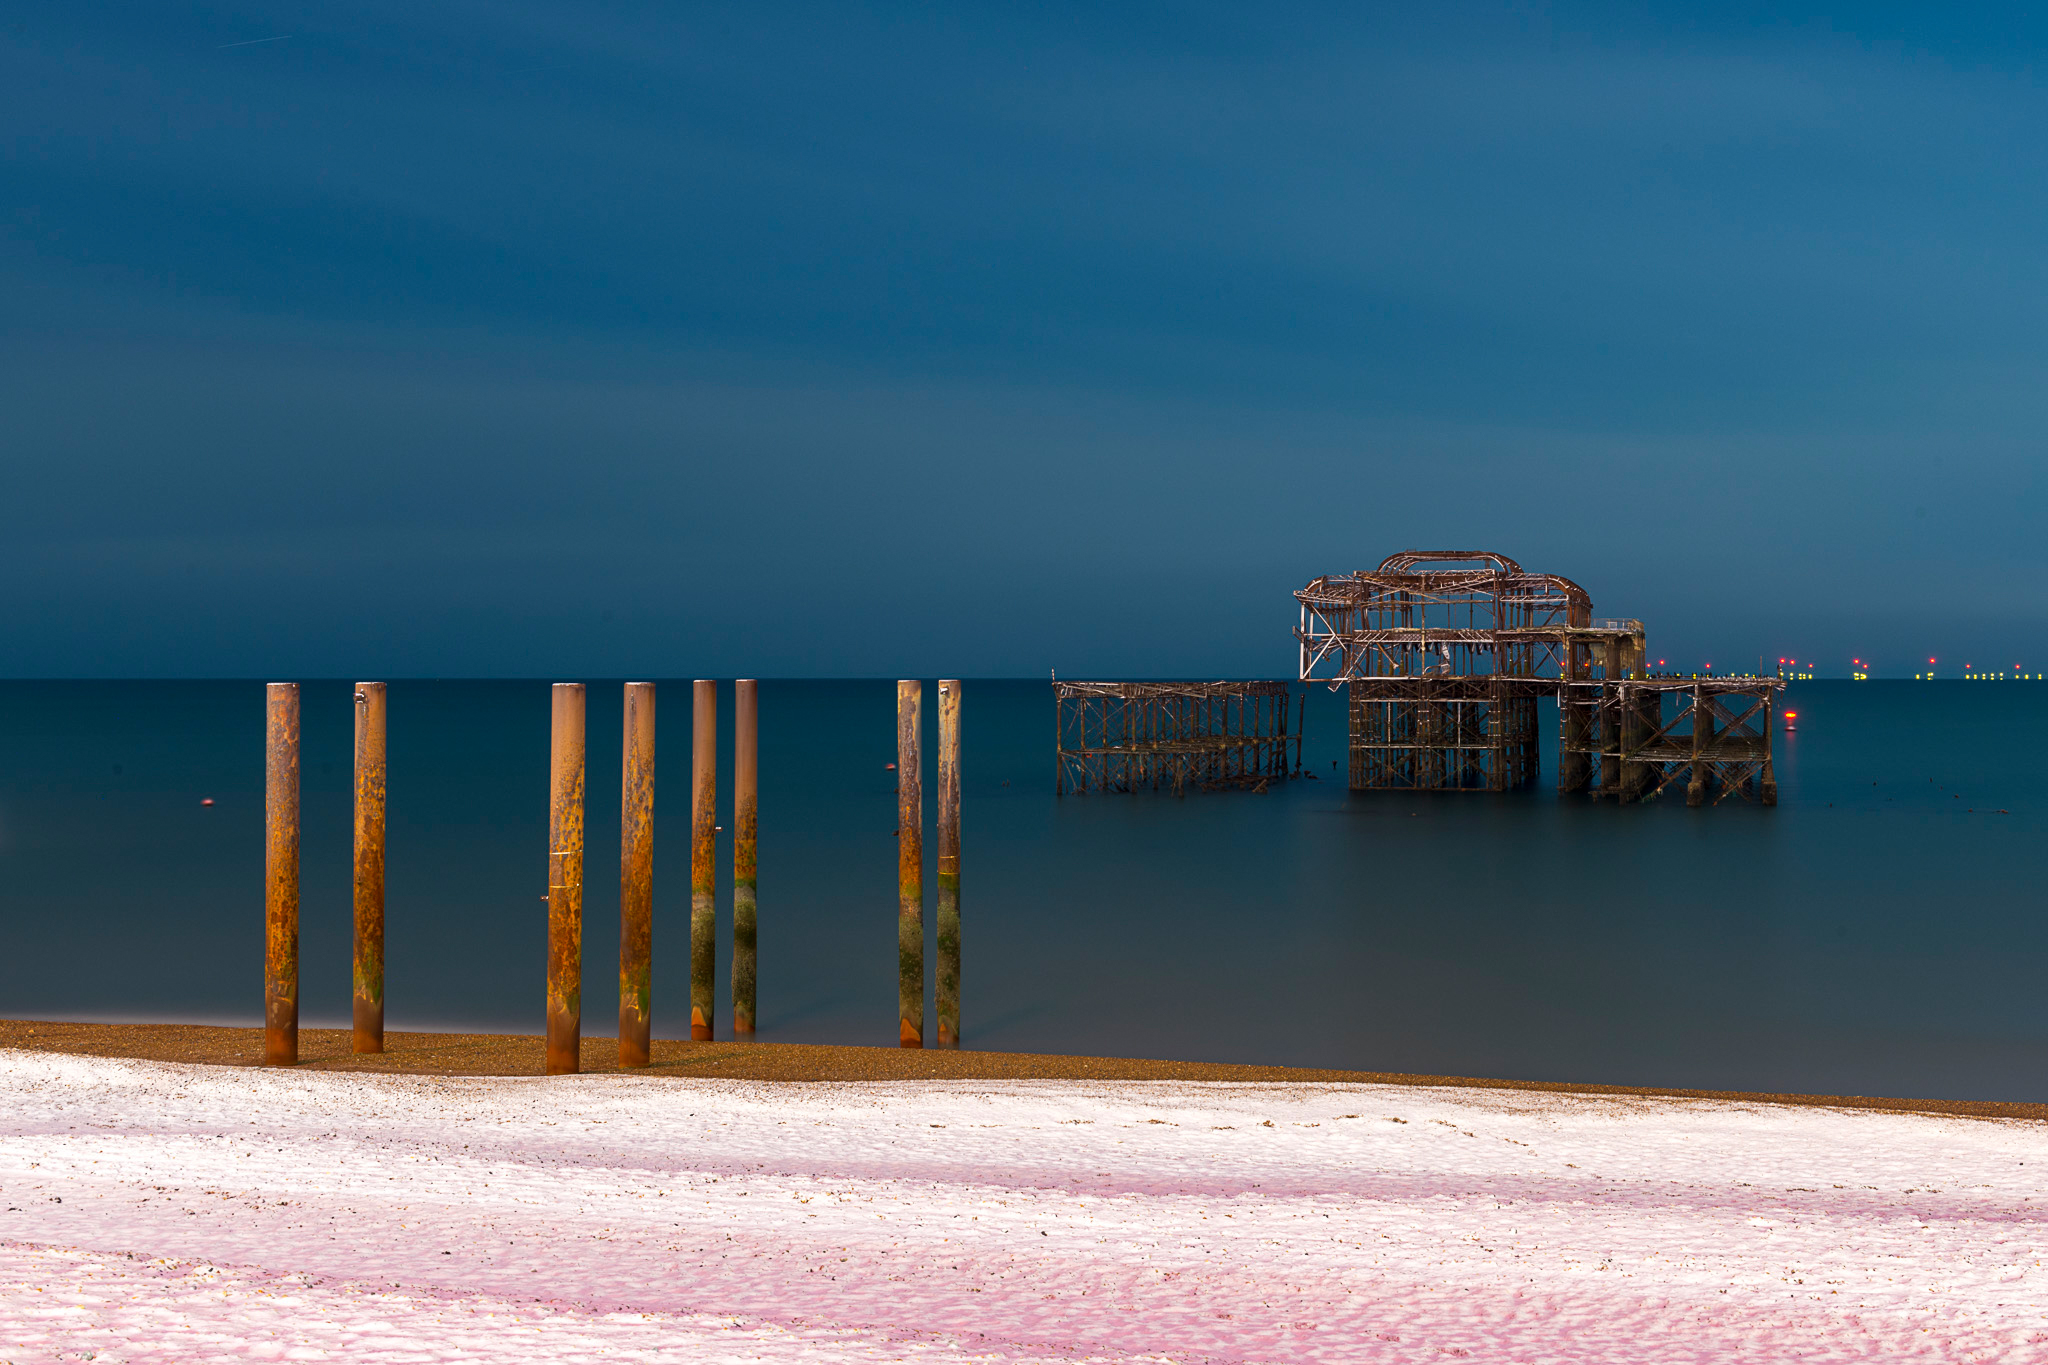 Alex_Bamford_Photography_Brighton_Horizon_night_snow.jpg